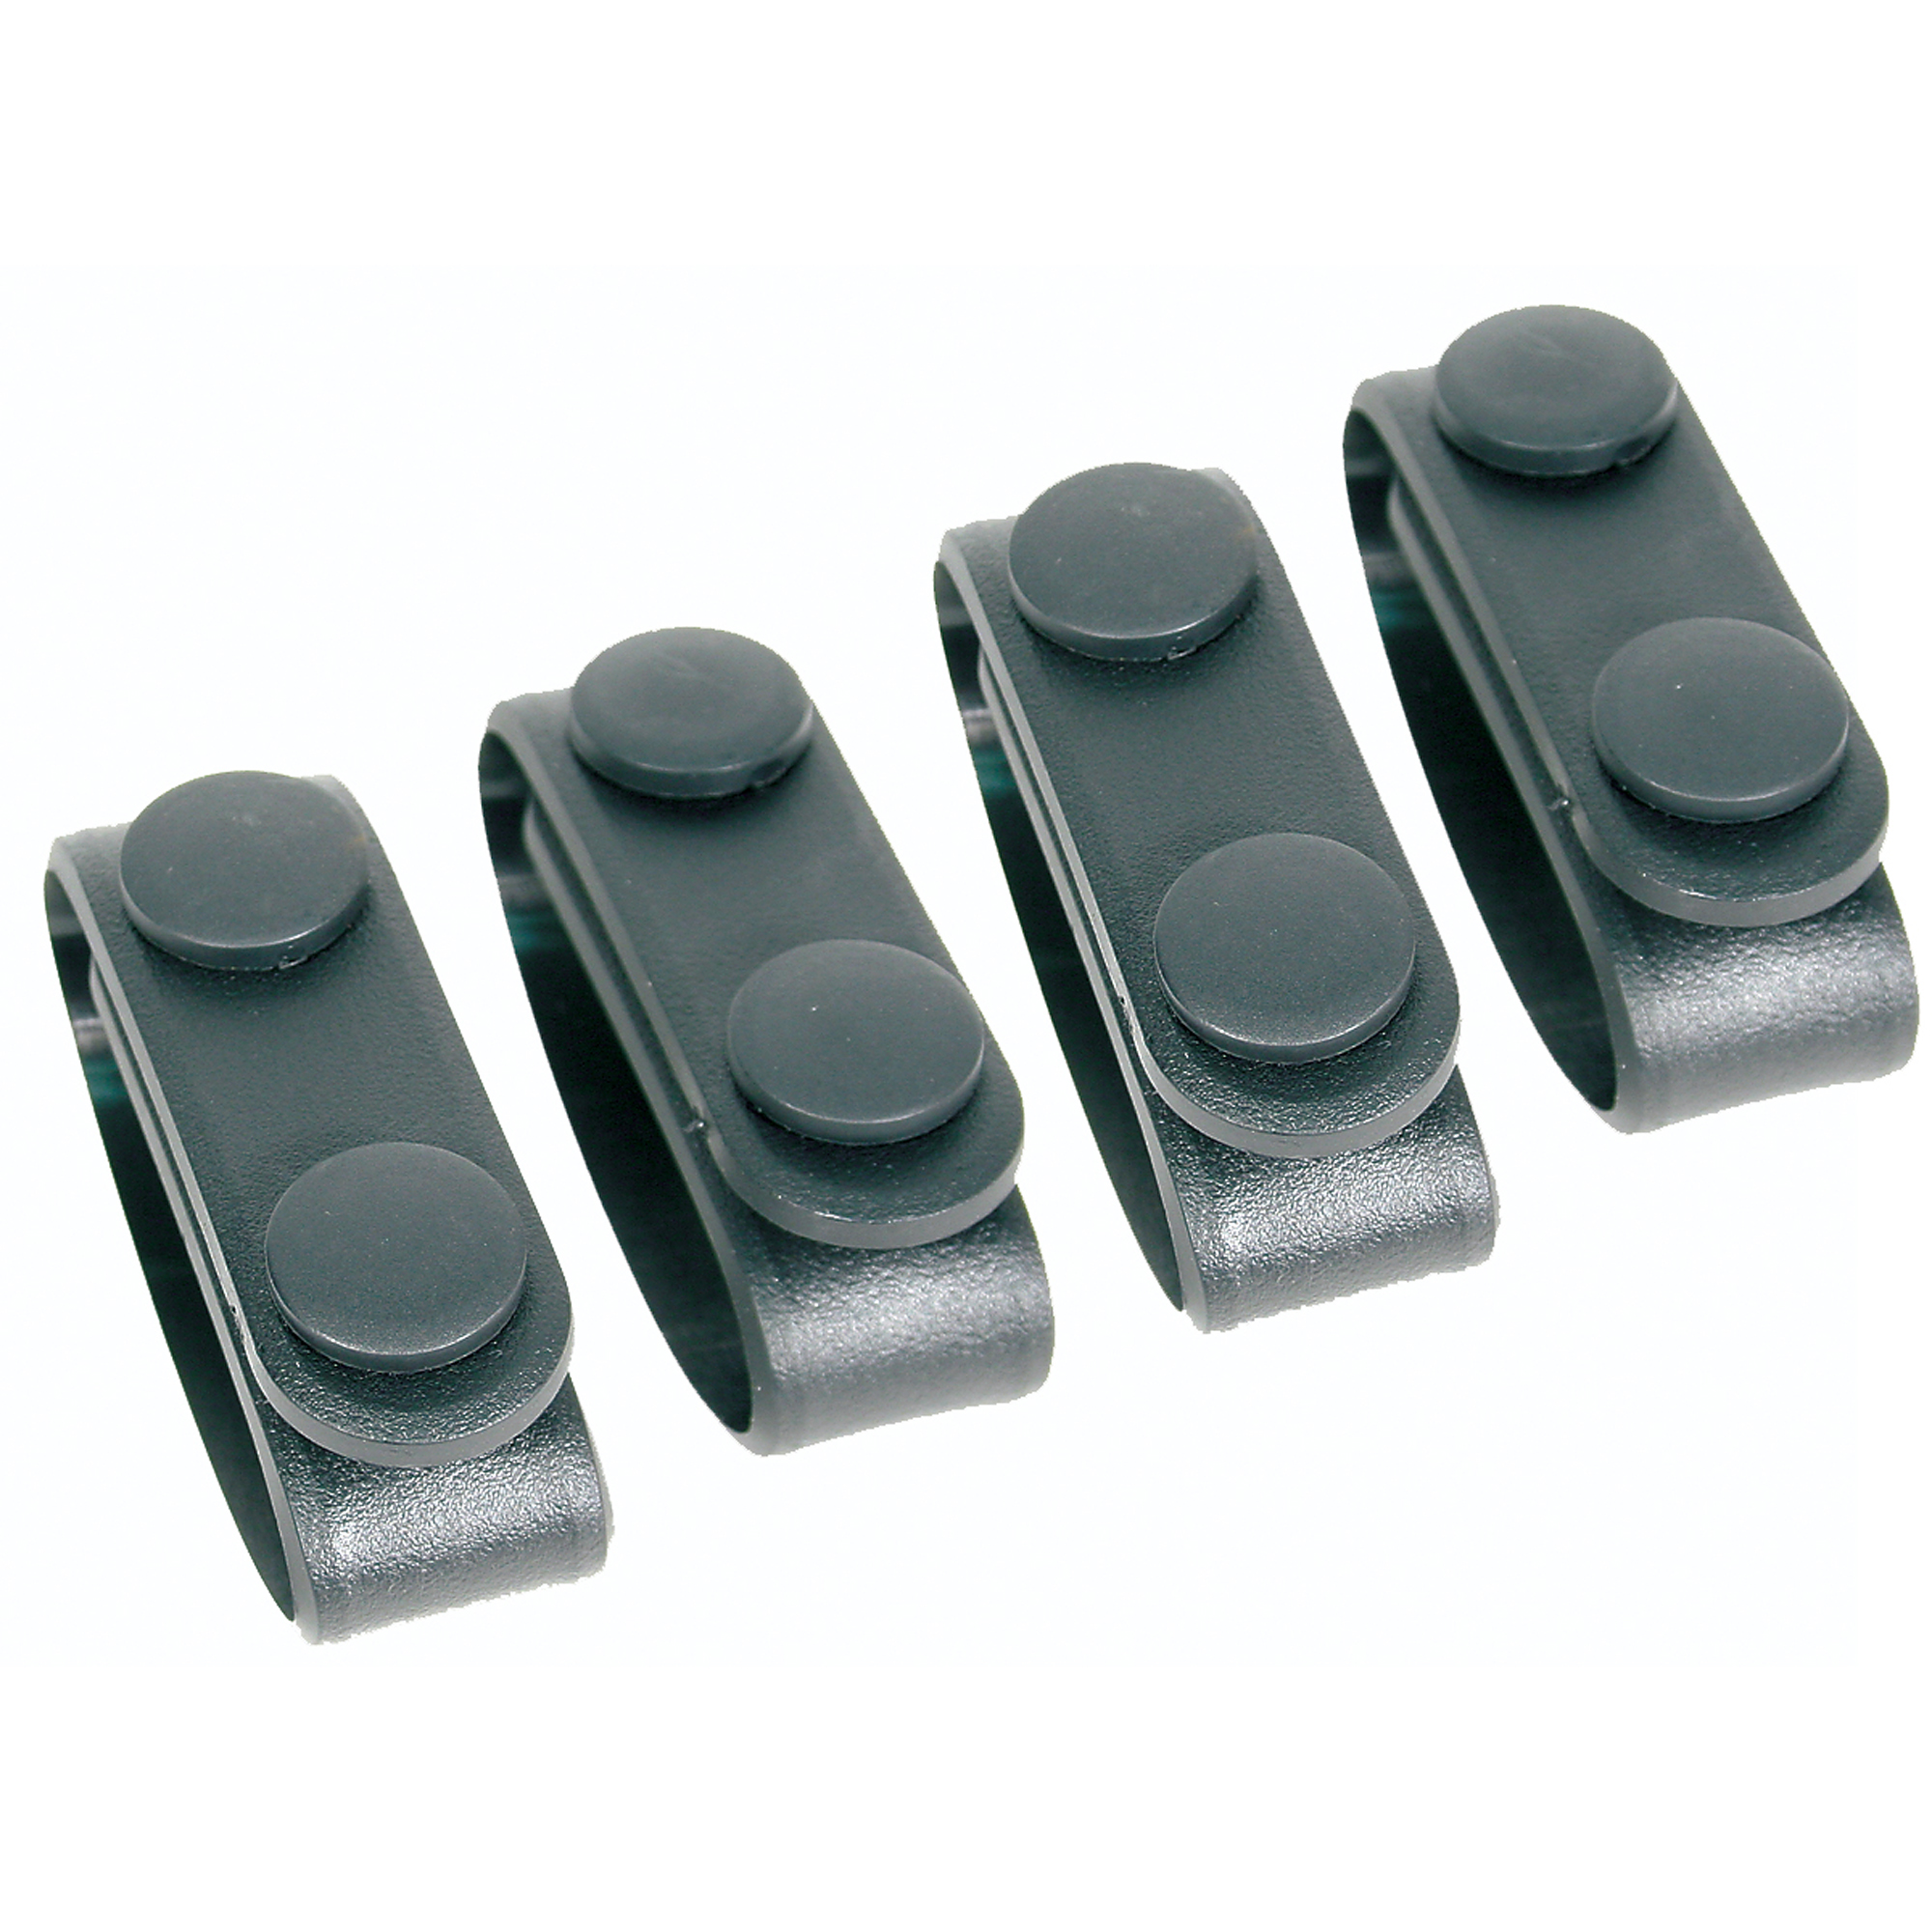 Bh Molded Blt Keepers (4) Blk